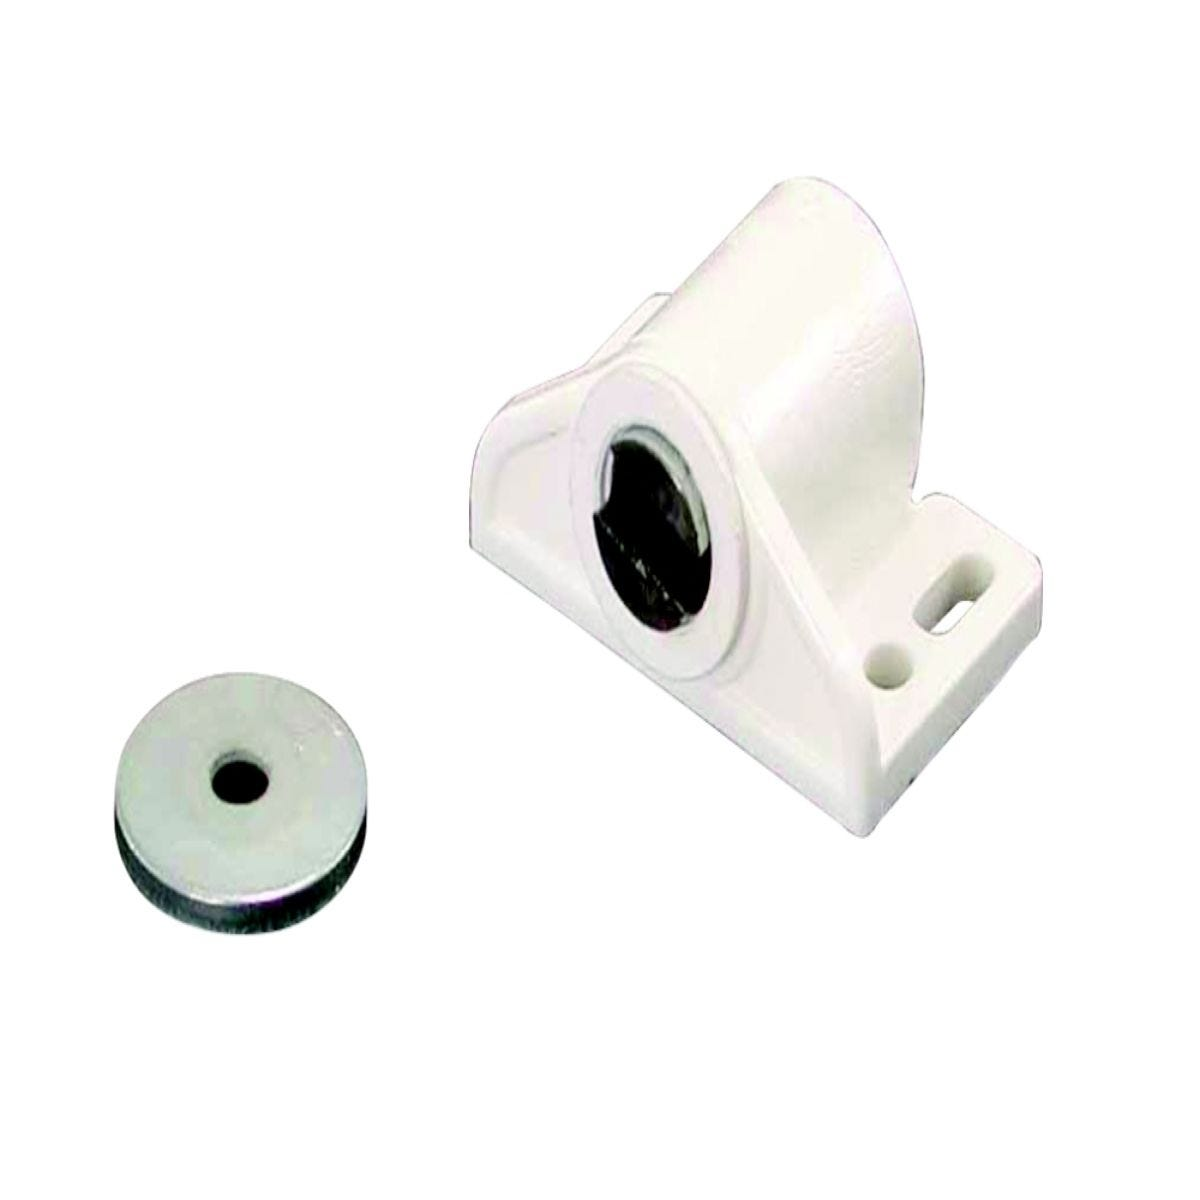 Select Hardware Magnetic Catch Mini White (1 Pack)